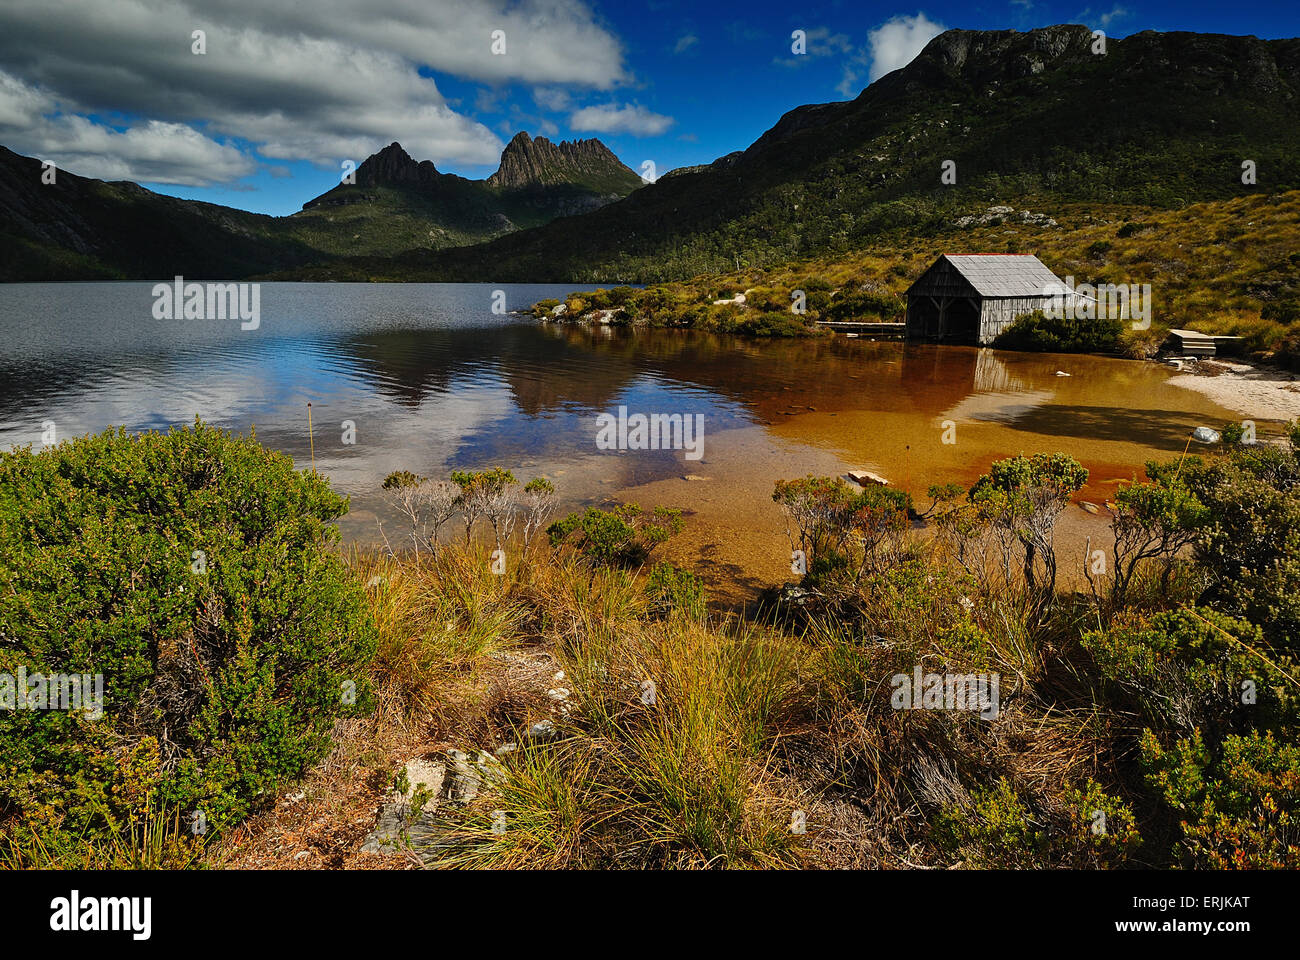 Cradle Mountain National Park with Dove lake and a hut - Stock Image